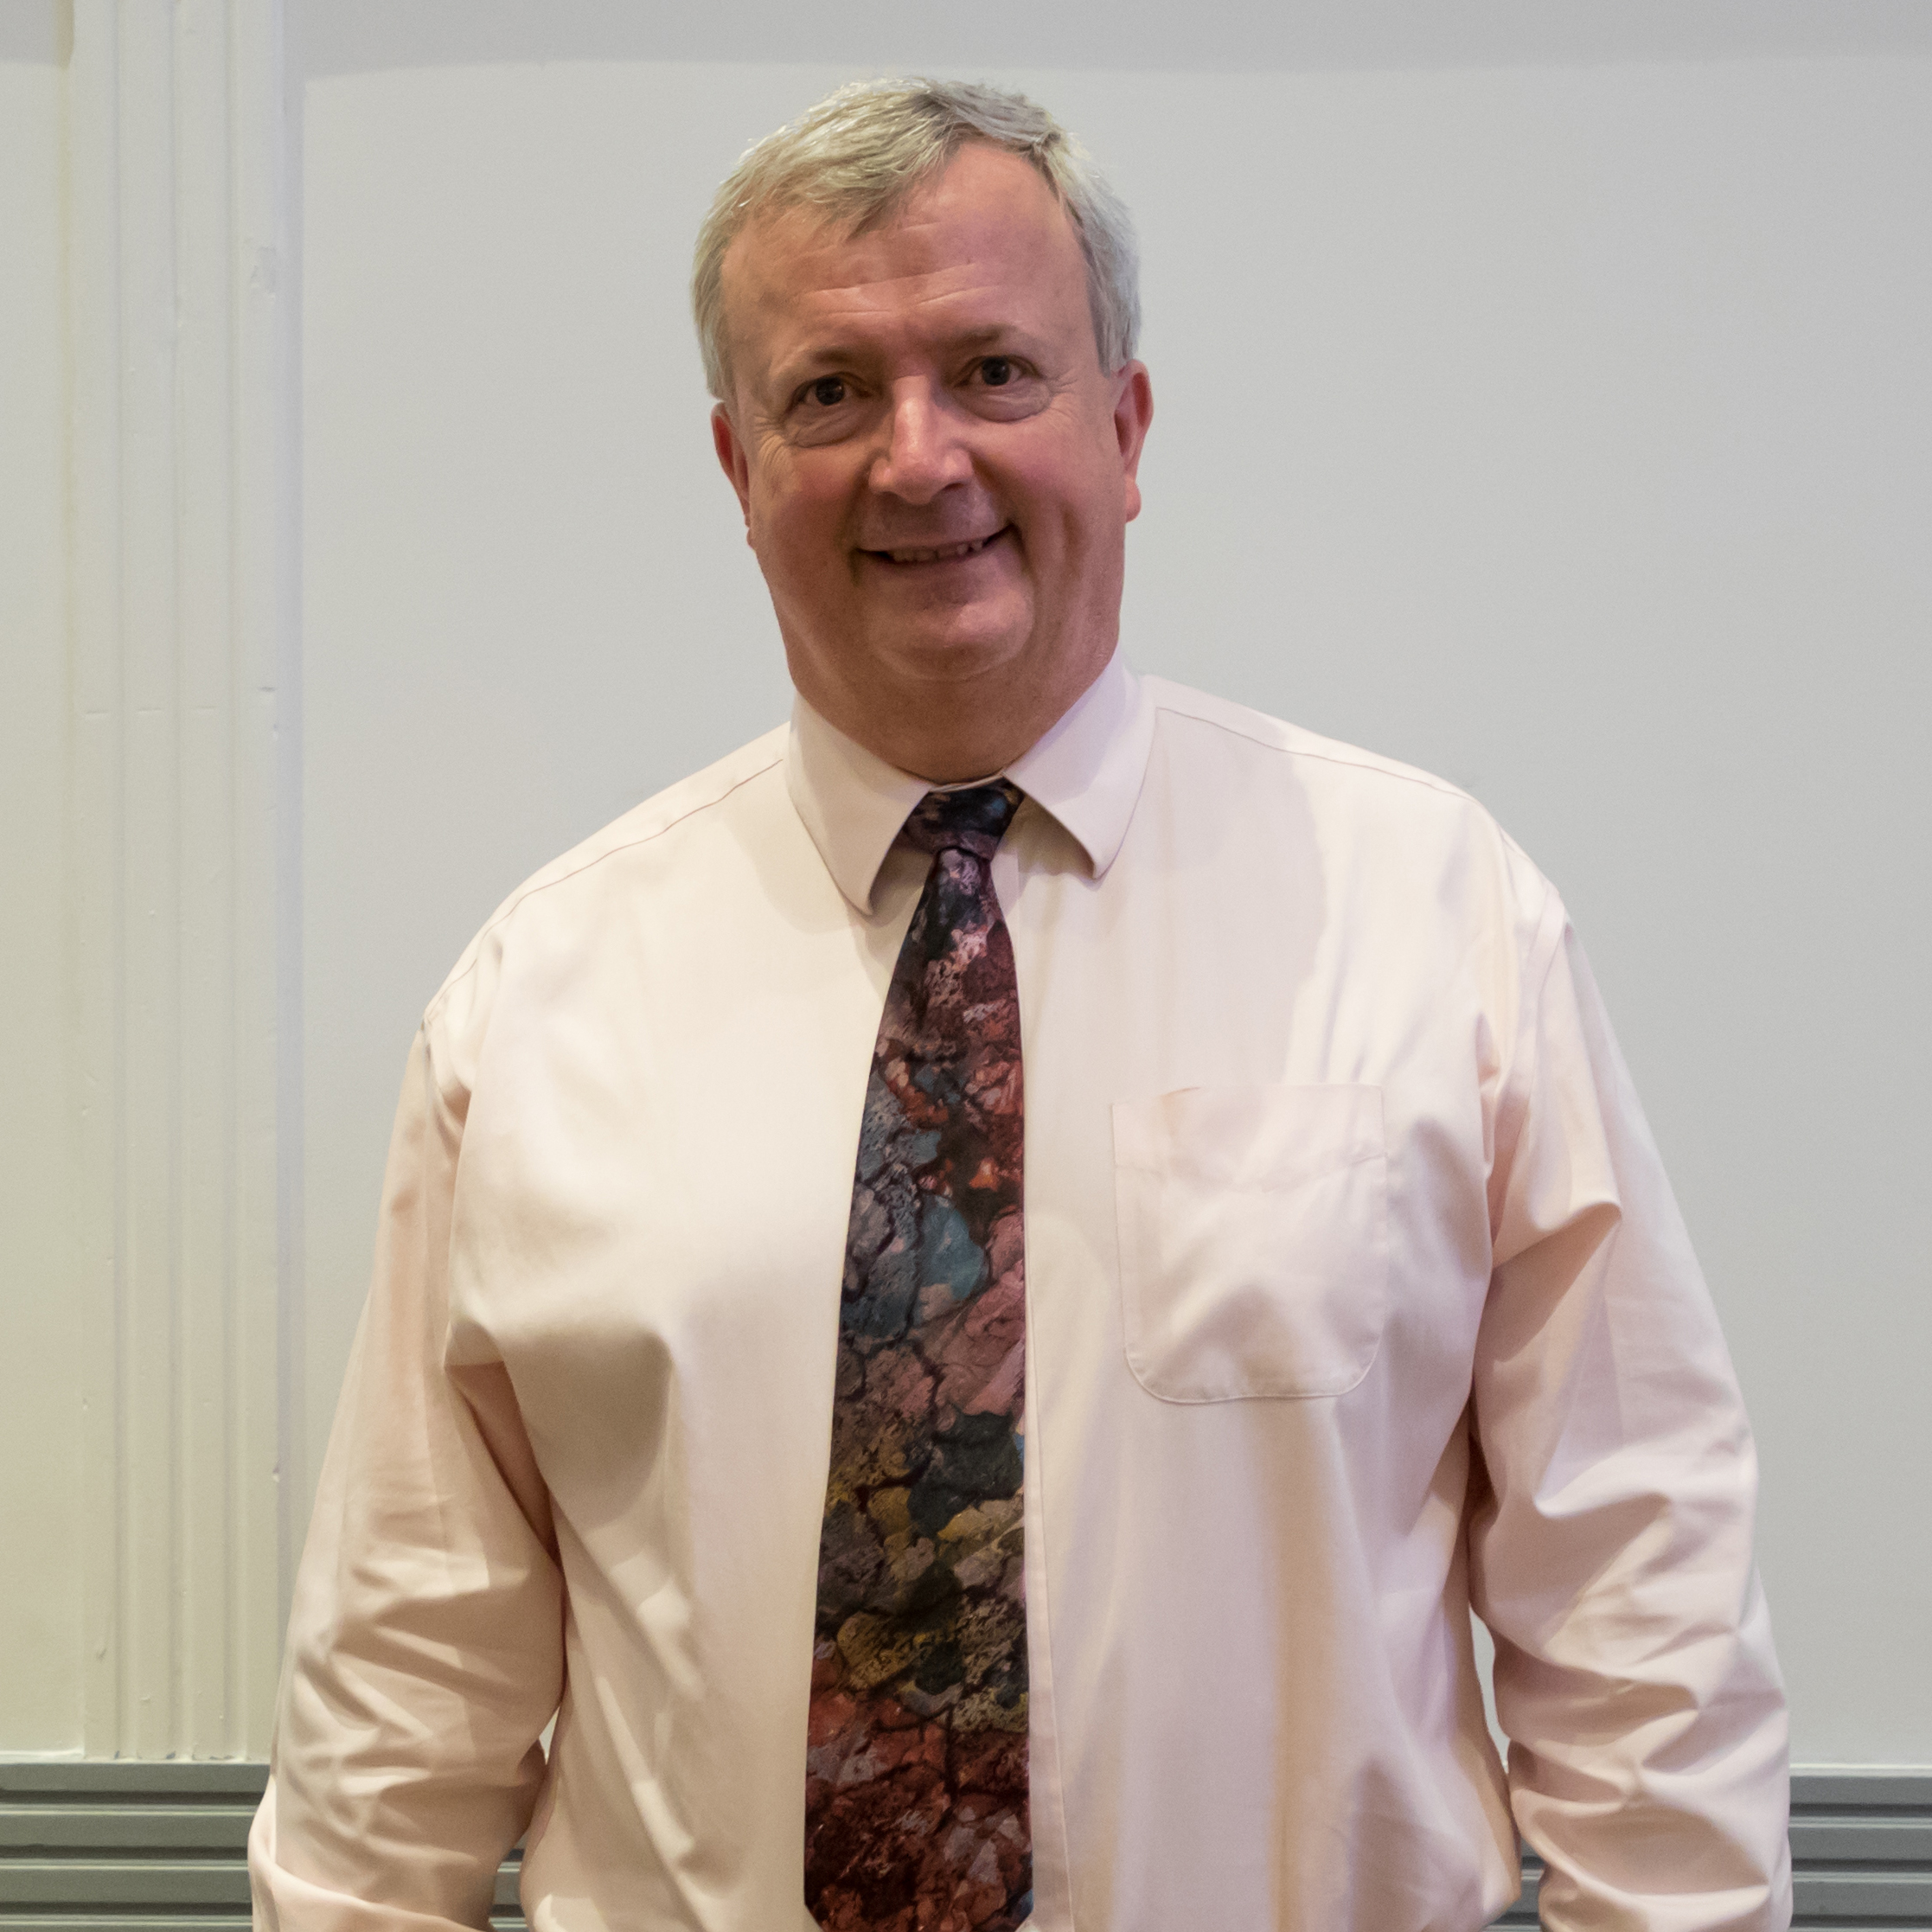 Curtis Baxstrom, OD, FAAO, FCOVD